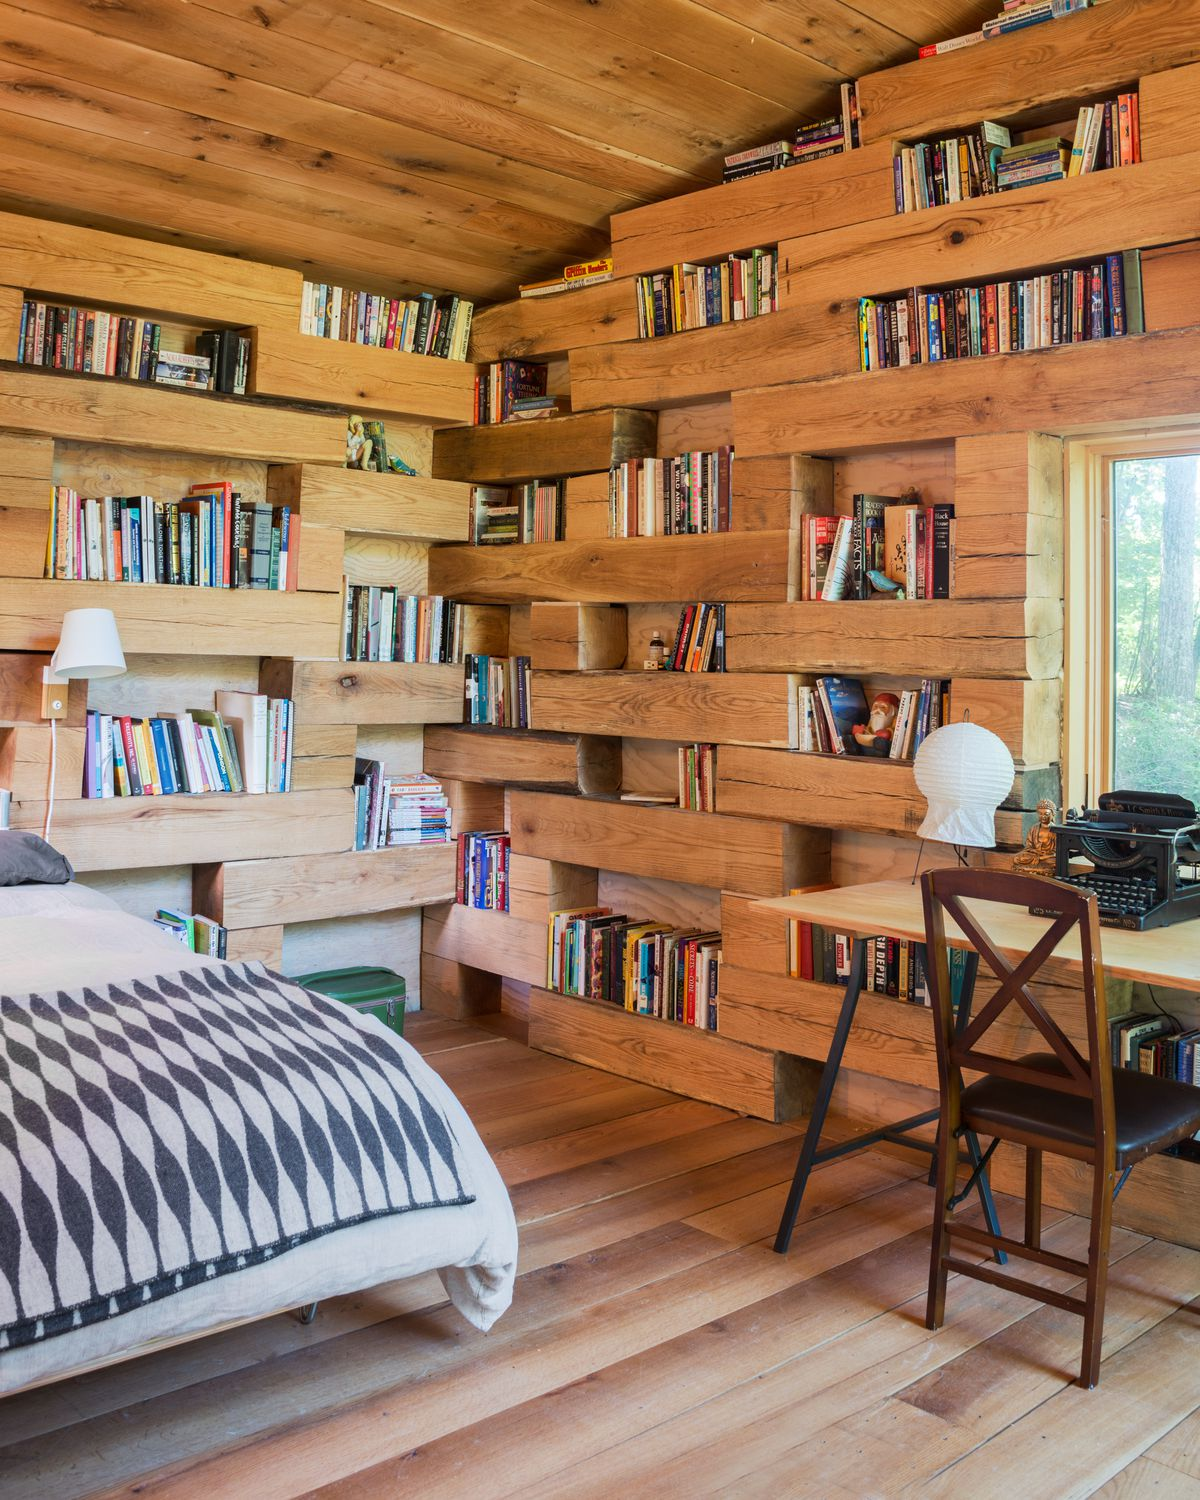 More than half of the wood-paneled interior is covered with bookshelves.